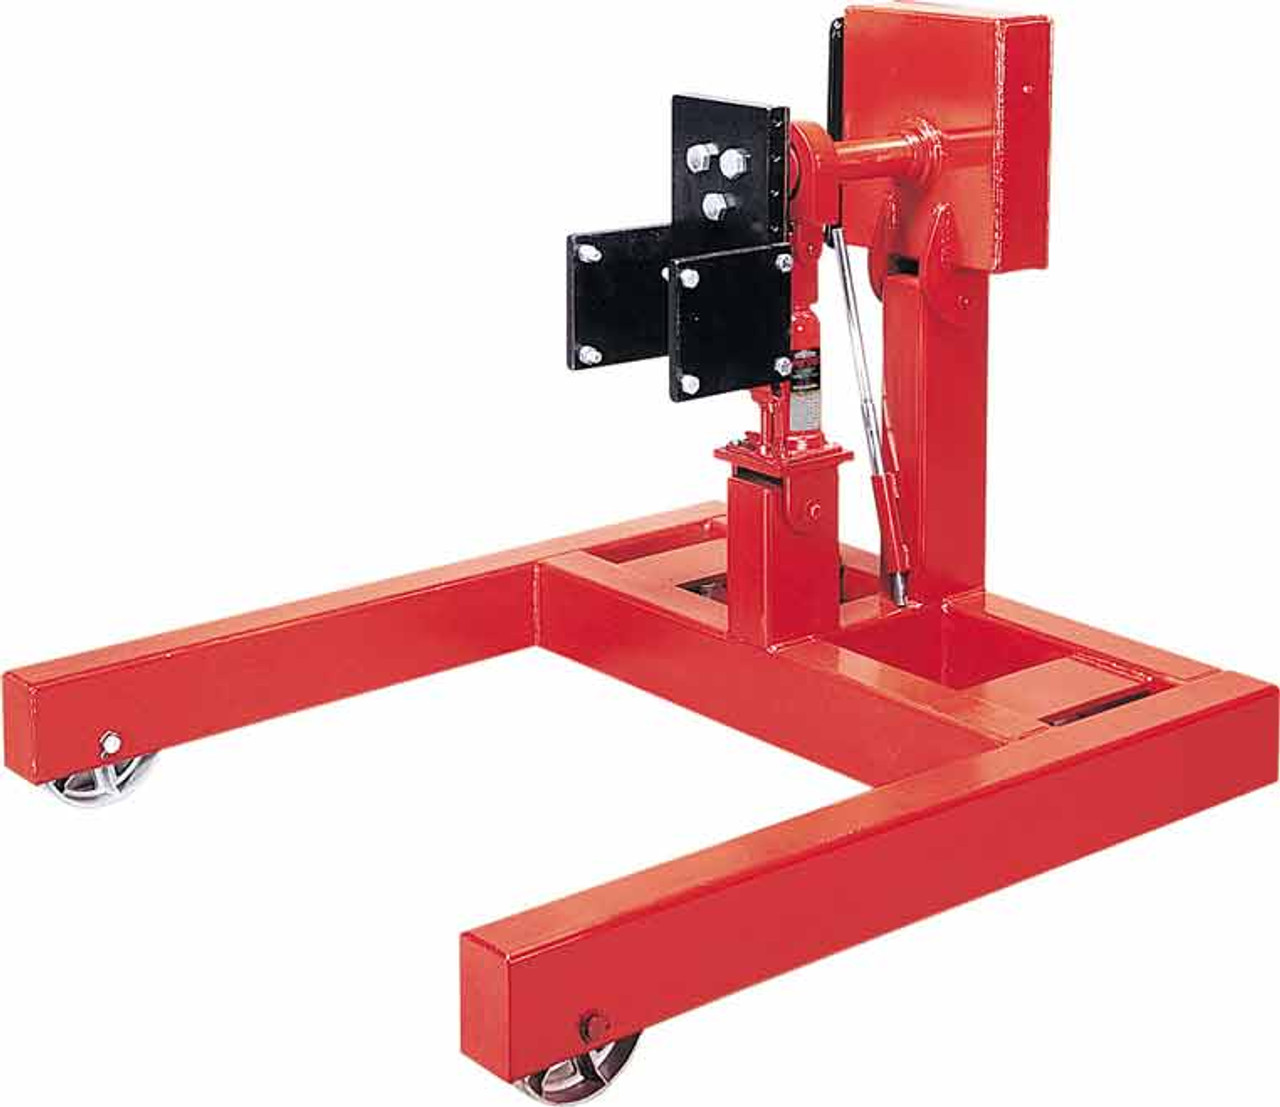 NorcoIndustries 78160 3 Ton Diesel Engine Stand